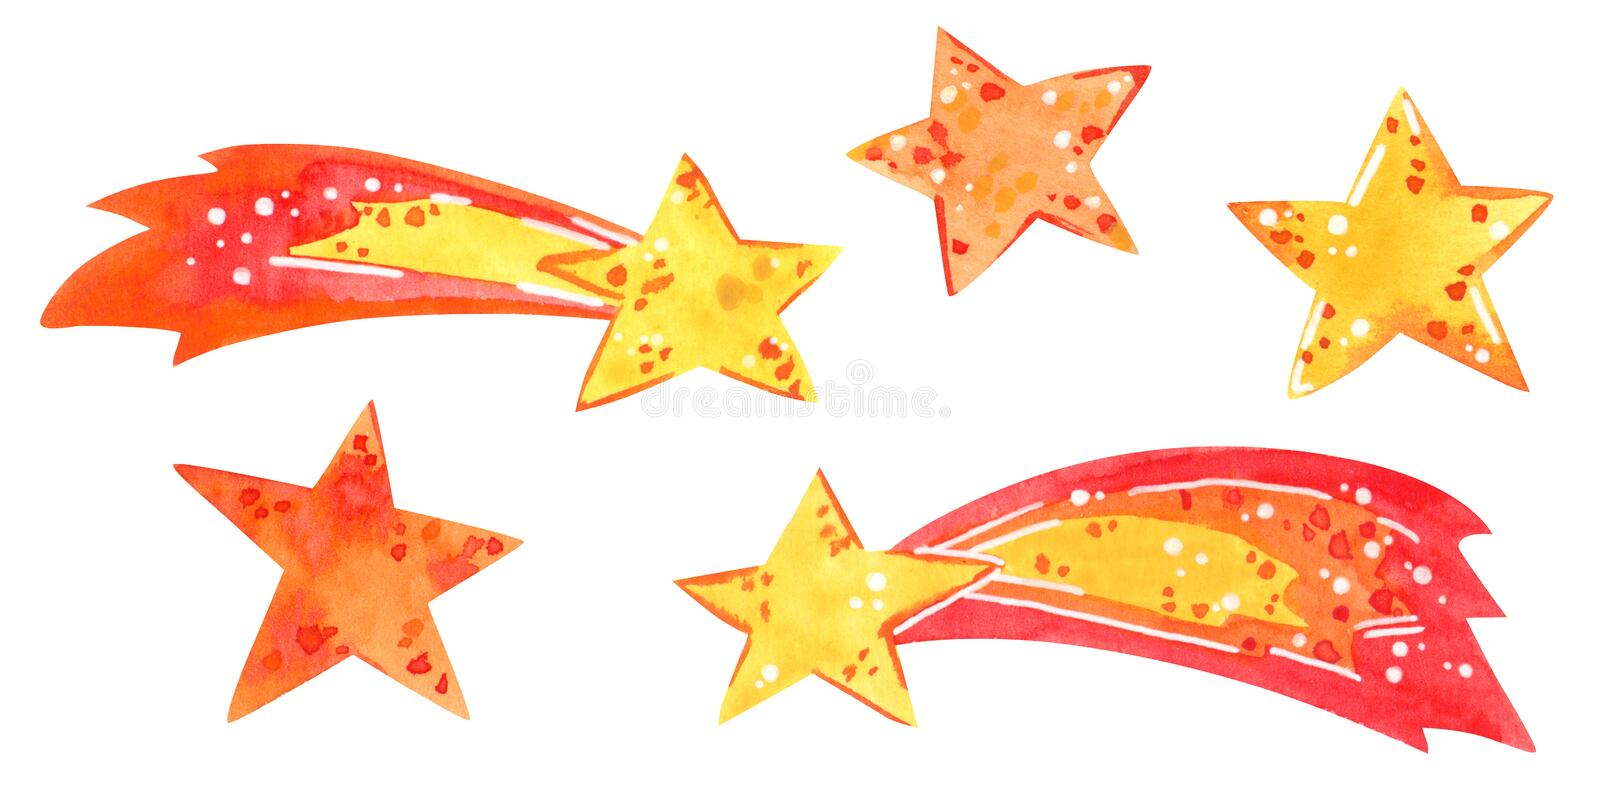 Space clipart set, stars, comets, hand drawn watercolor illustration royalty free illustration